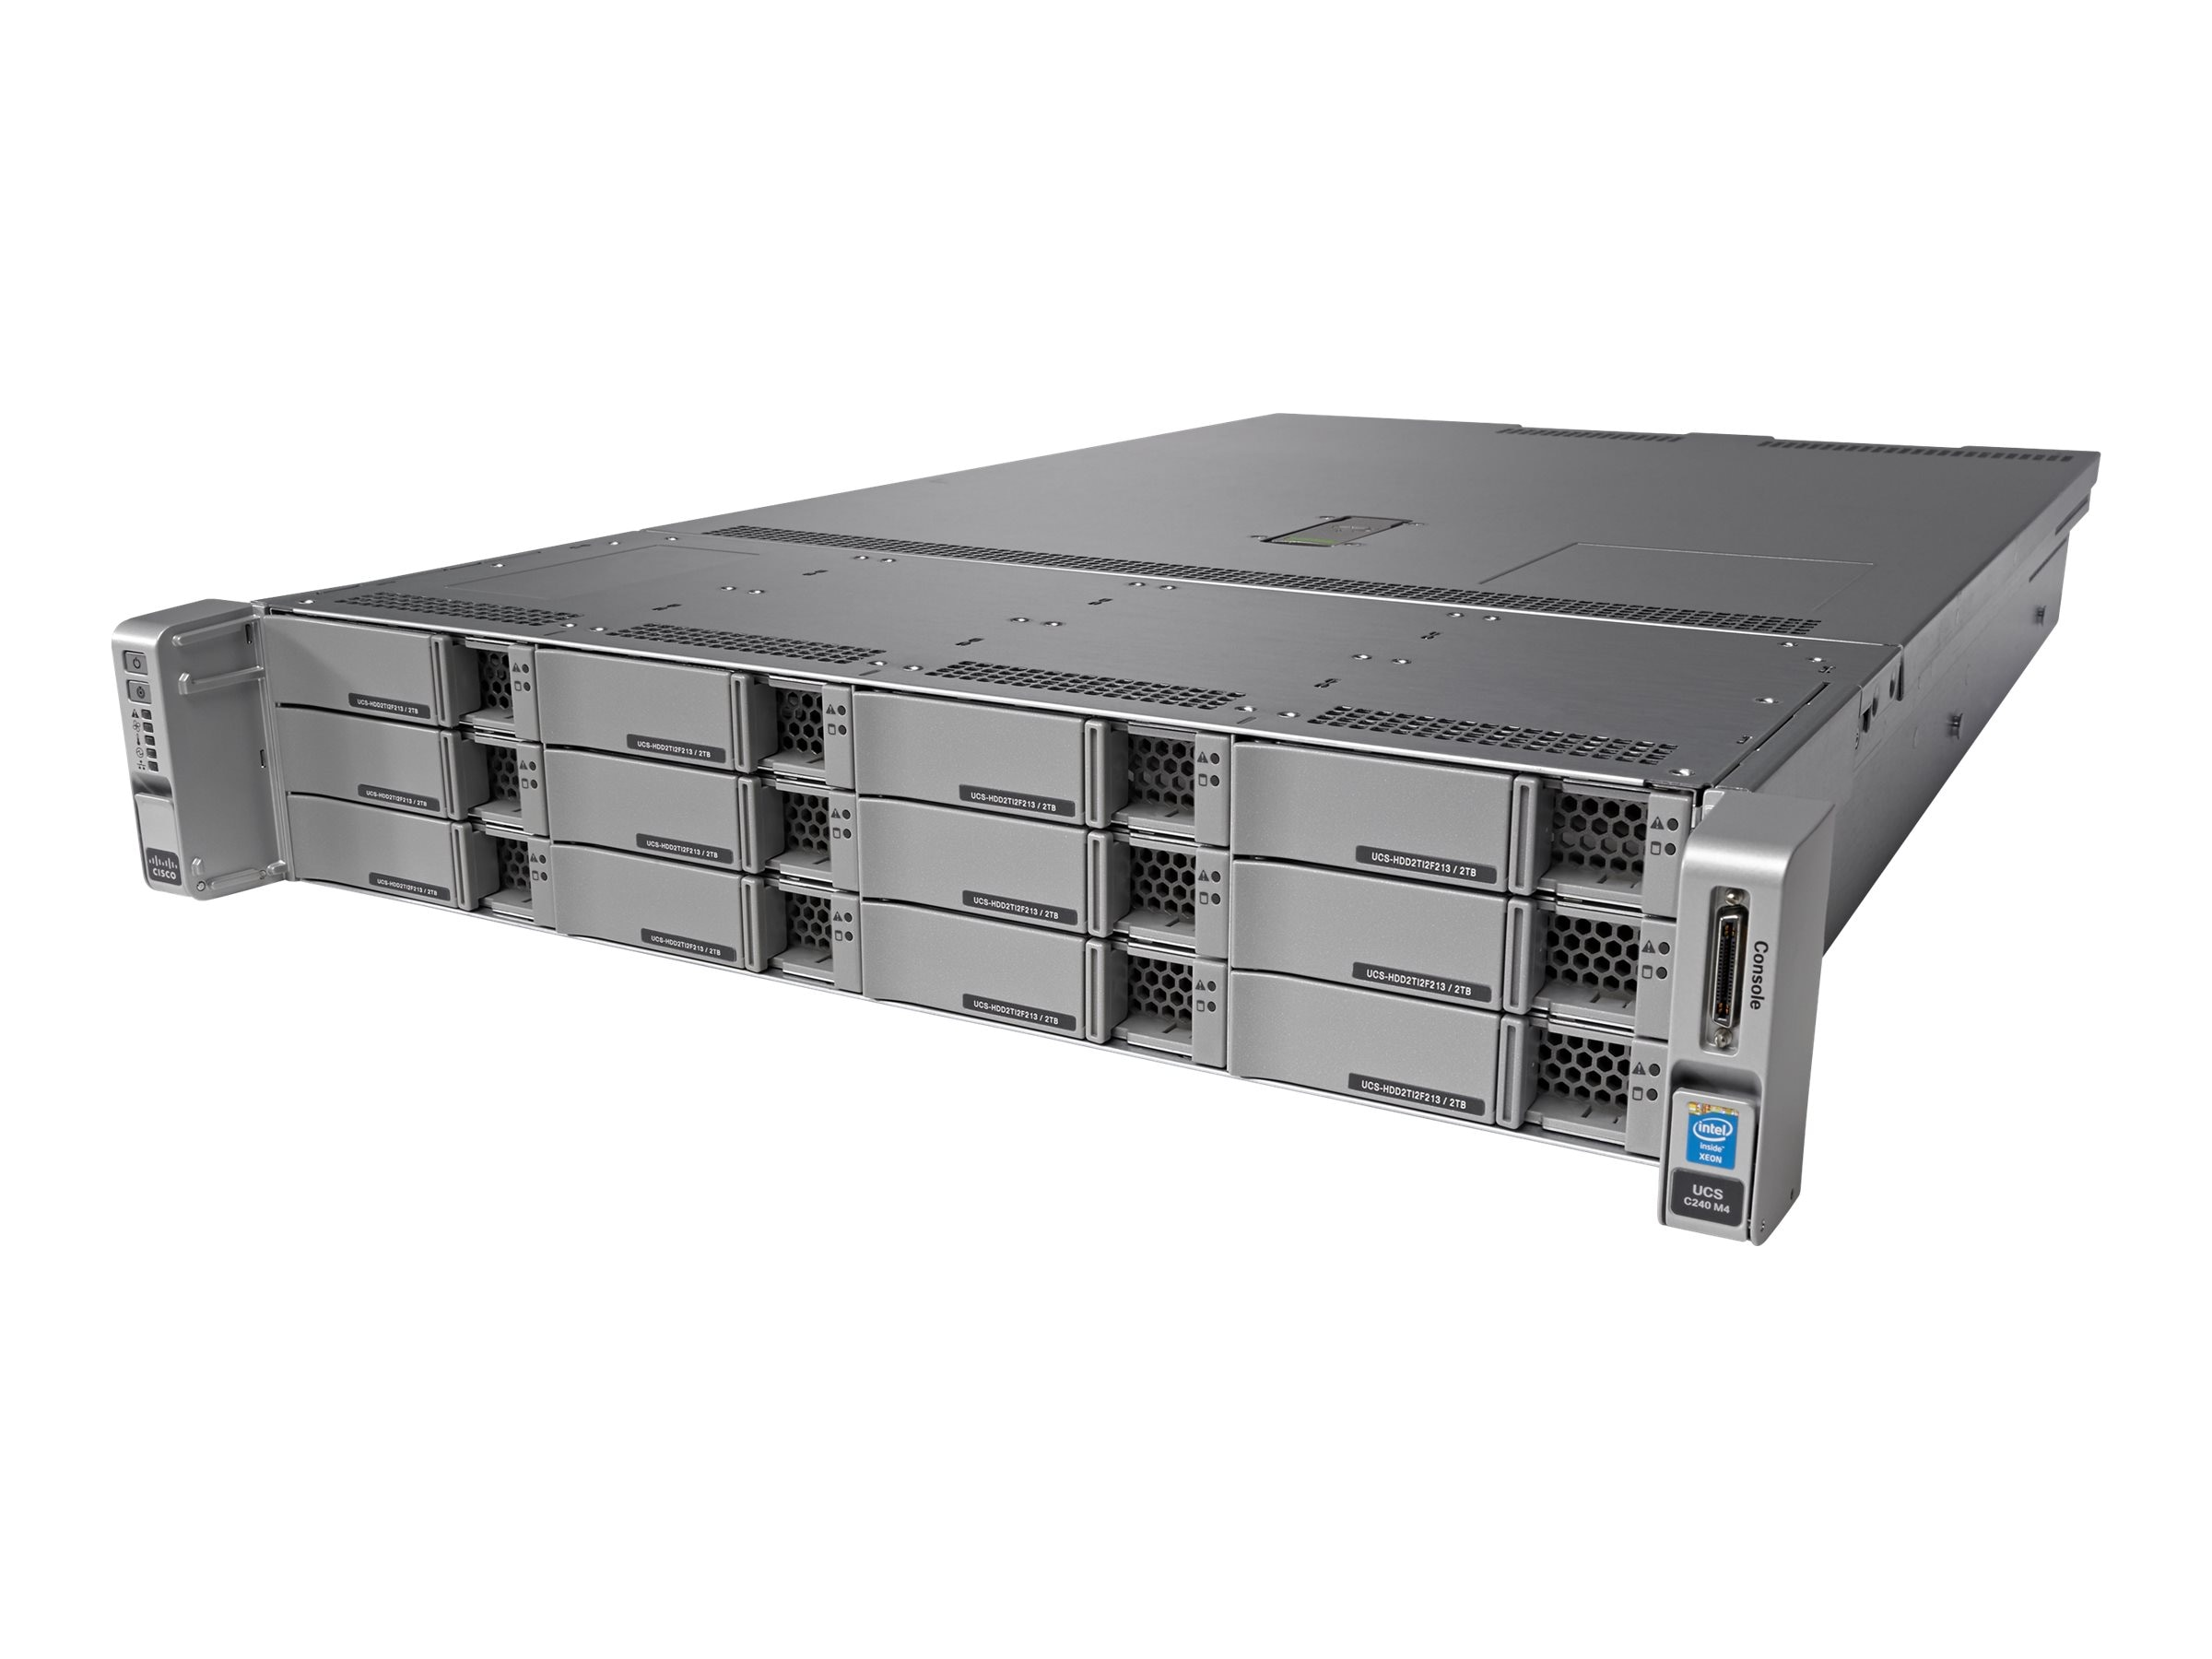 Cisco Connected Safety and Security UCS M4 2RU K9 (2x)Xeon E5-2600 v3 Family 32GB 12x3.5 Bays